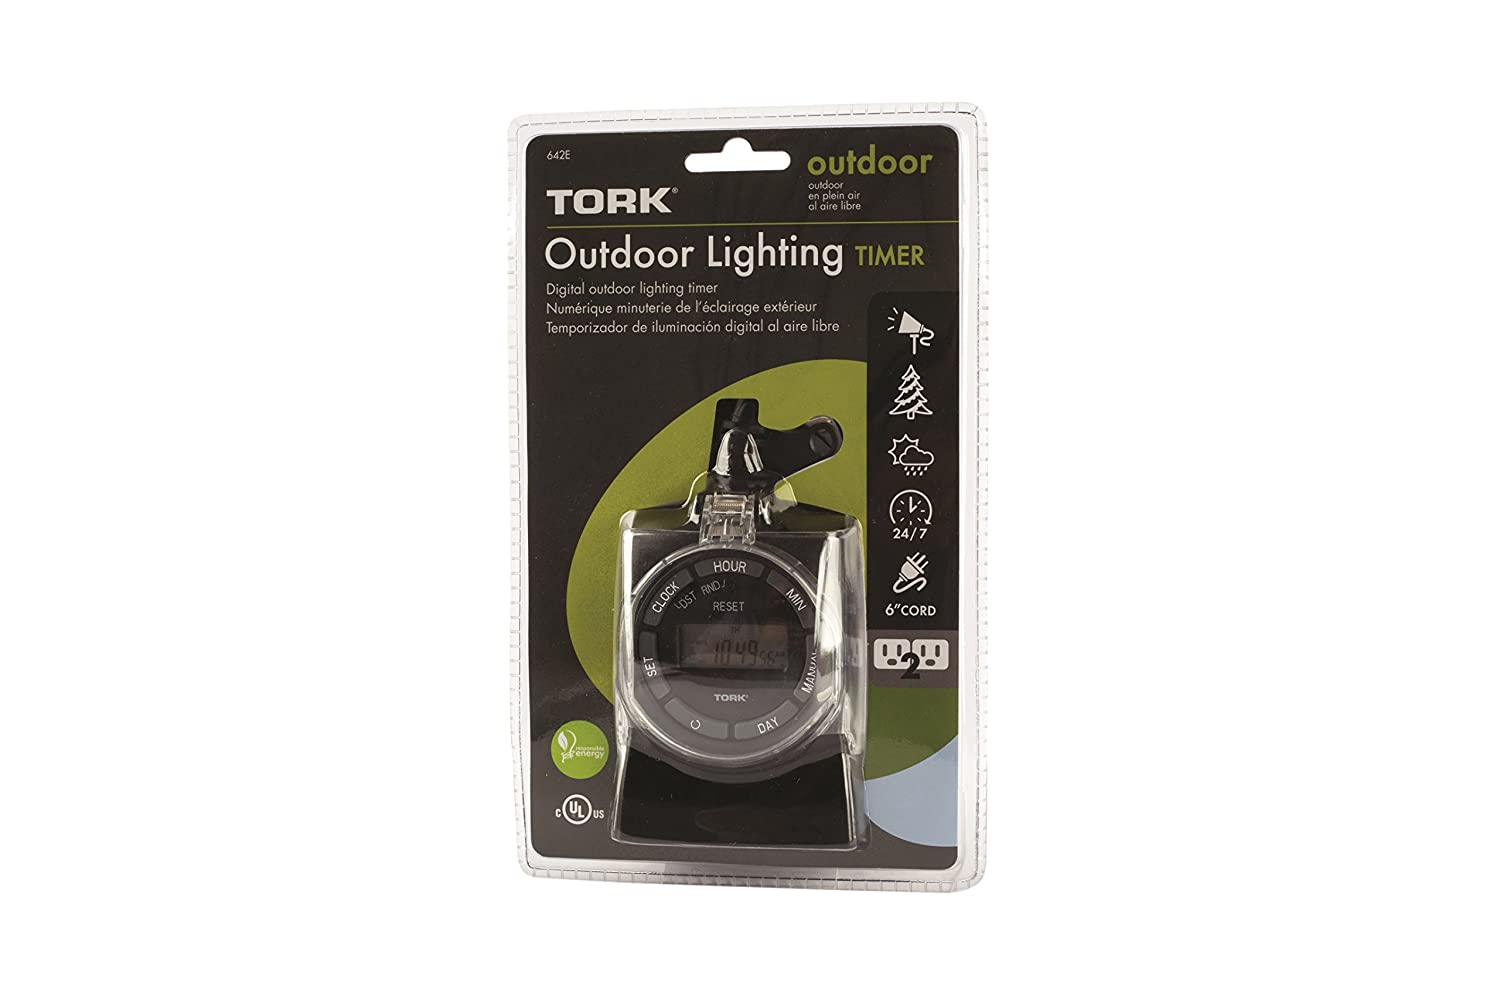 TORK 601A Plug-in Timer Outdoor General Purpose Mechanical Timer ...